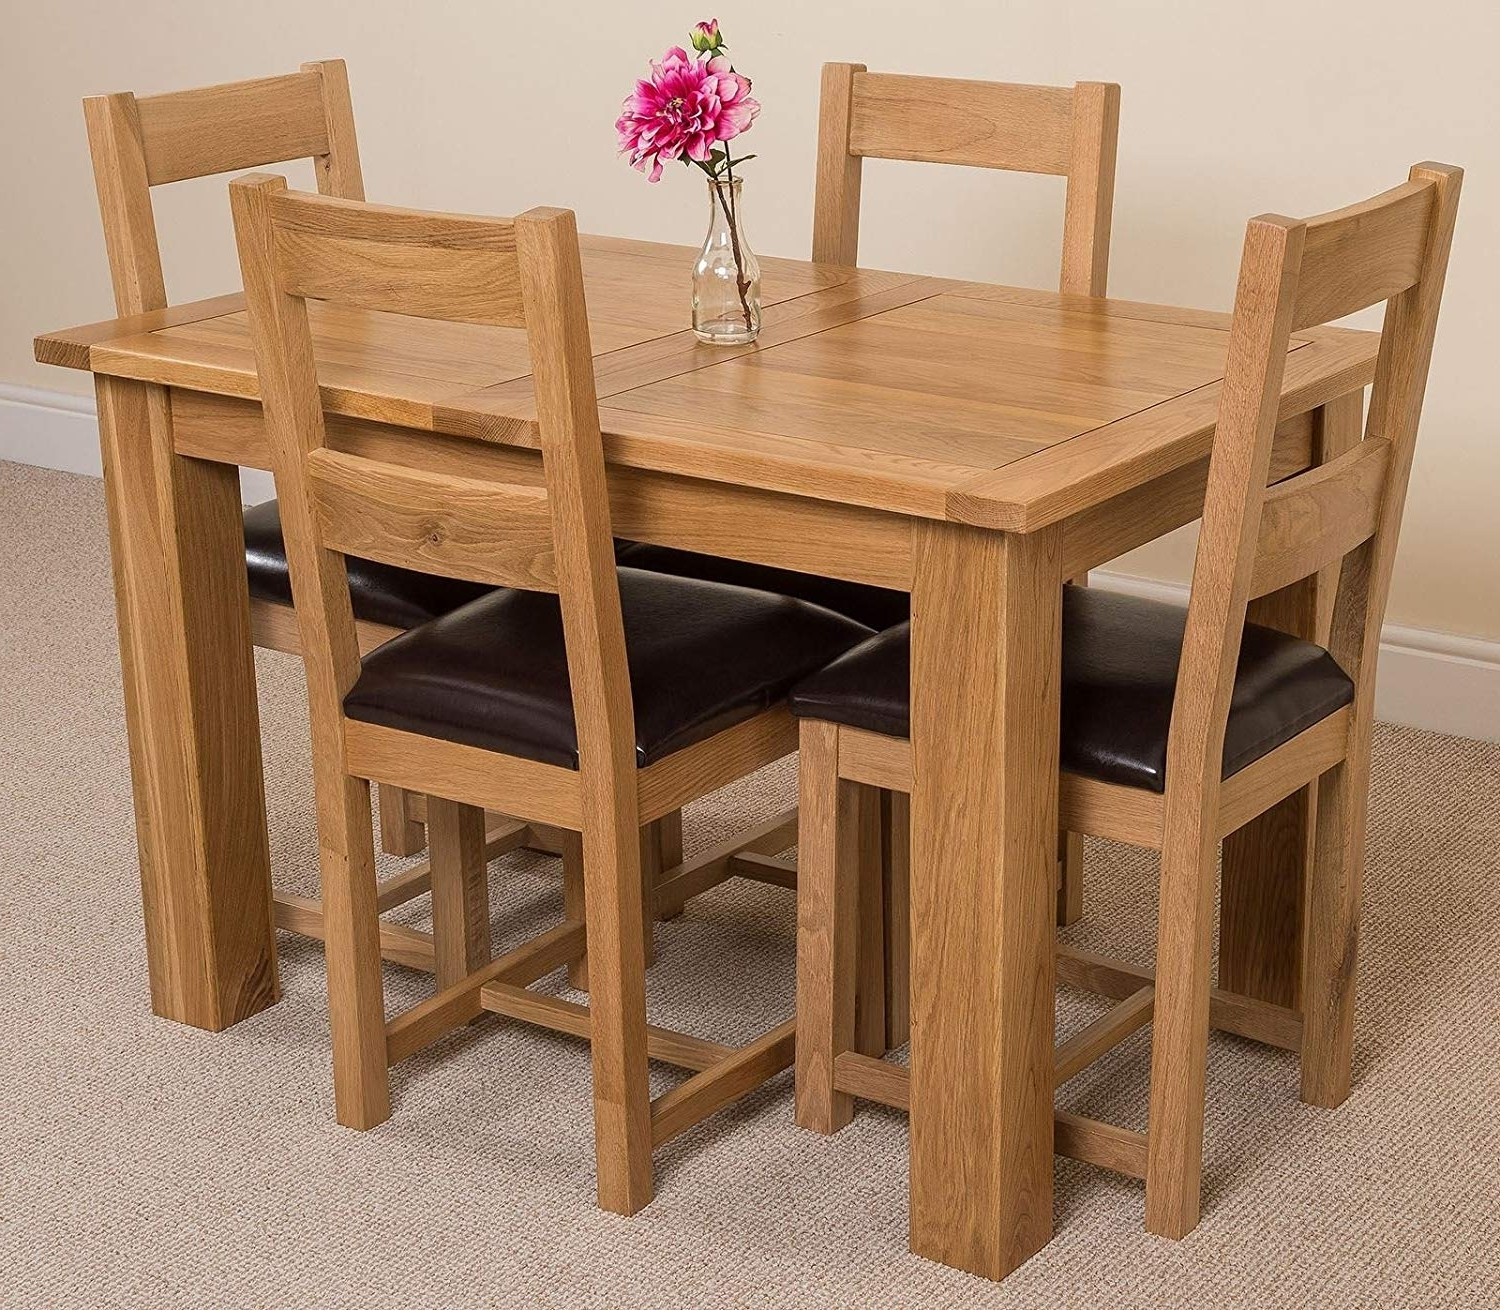 Hampton Solid Oak (120 160 Cm) Extending Dining Table & 4 Lincoln With Regard To Most Recently Released Extending Dining Tables Set (Gallery 19 of 25)